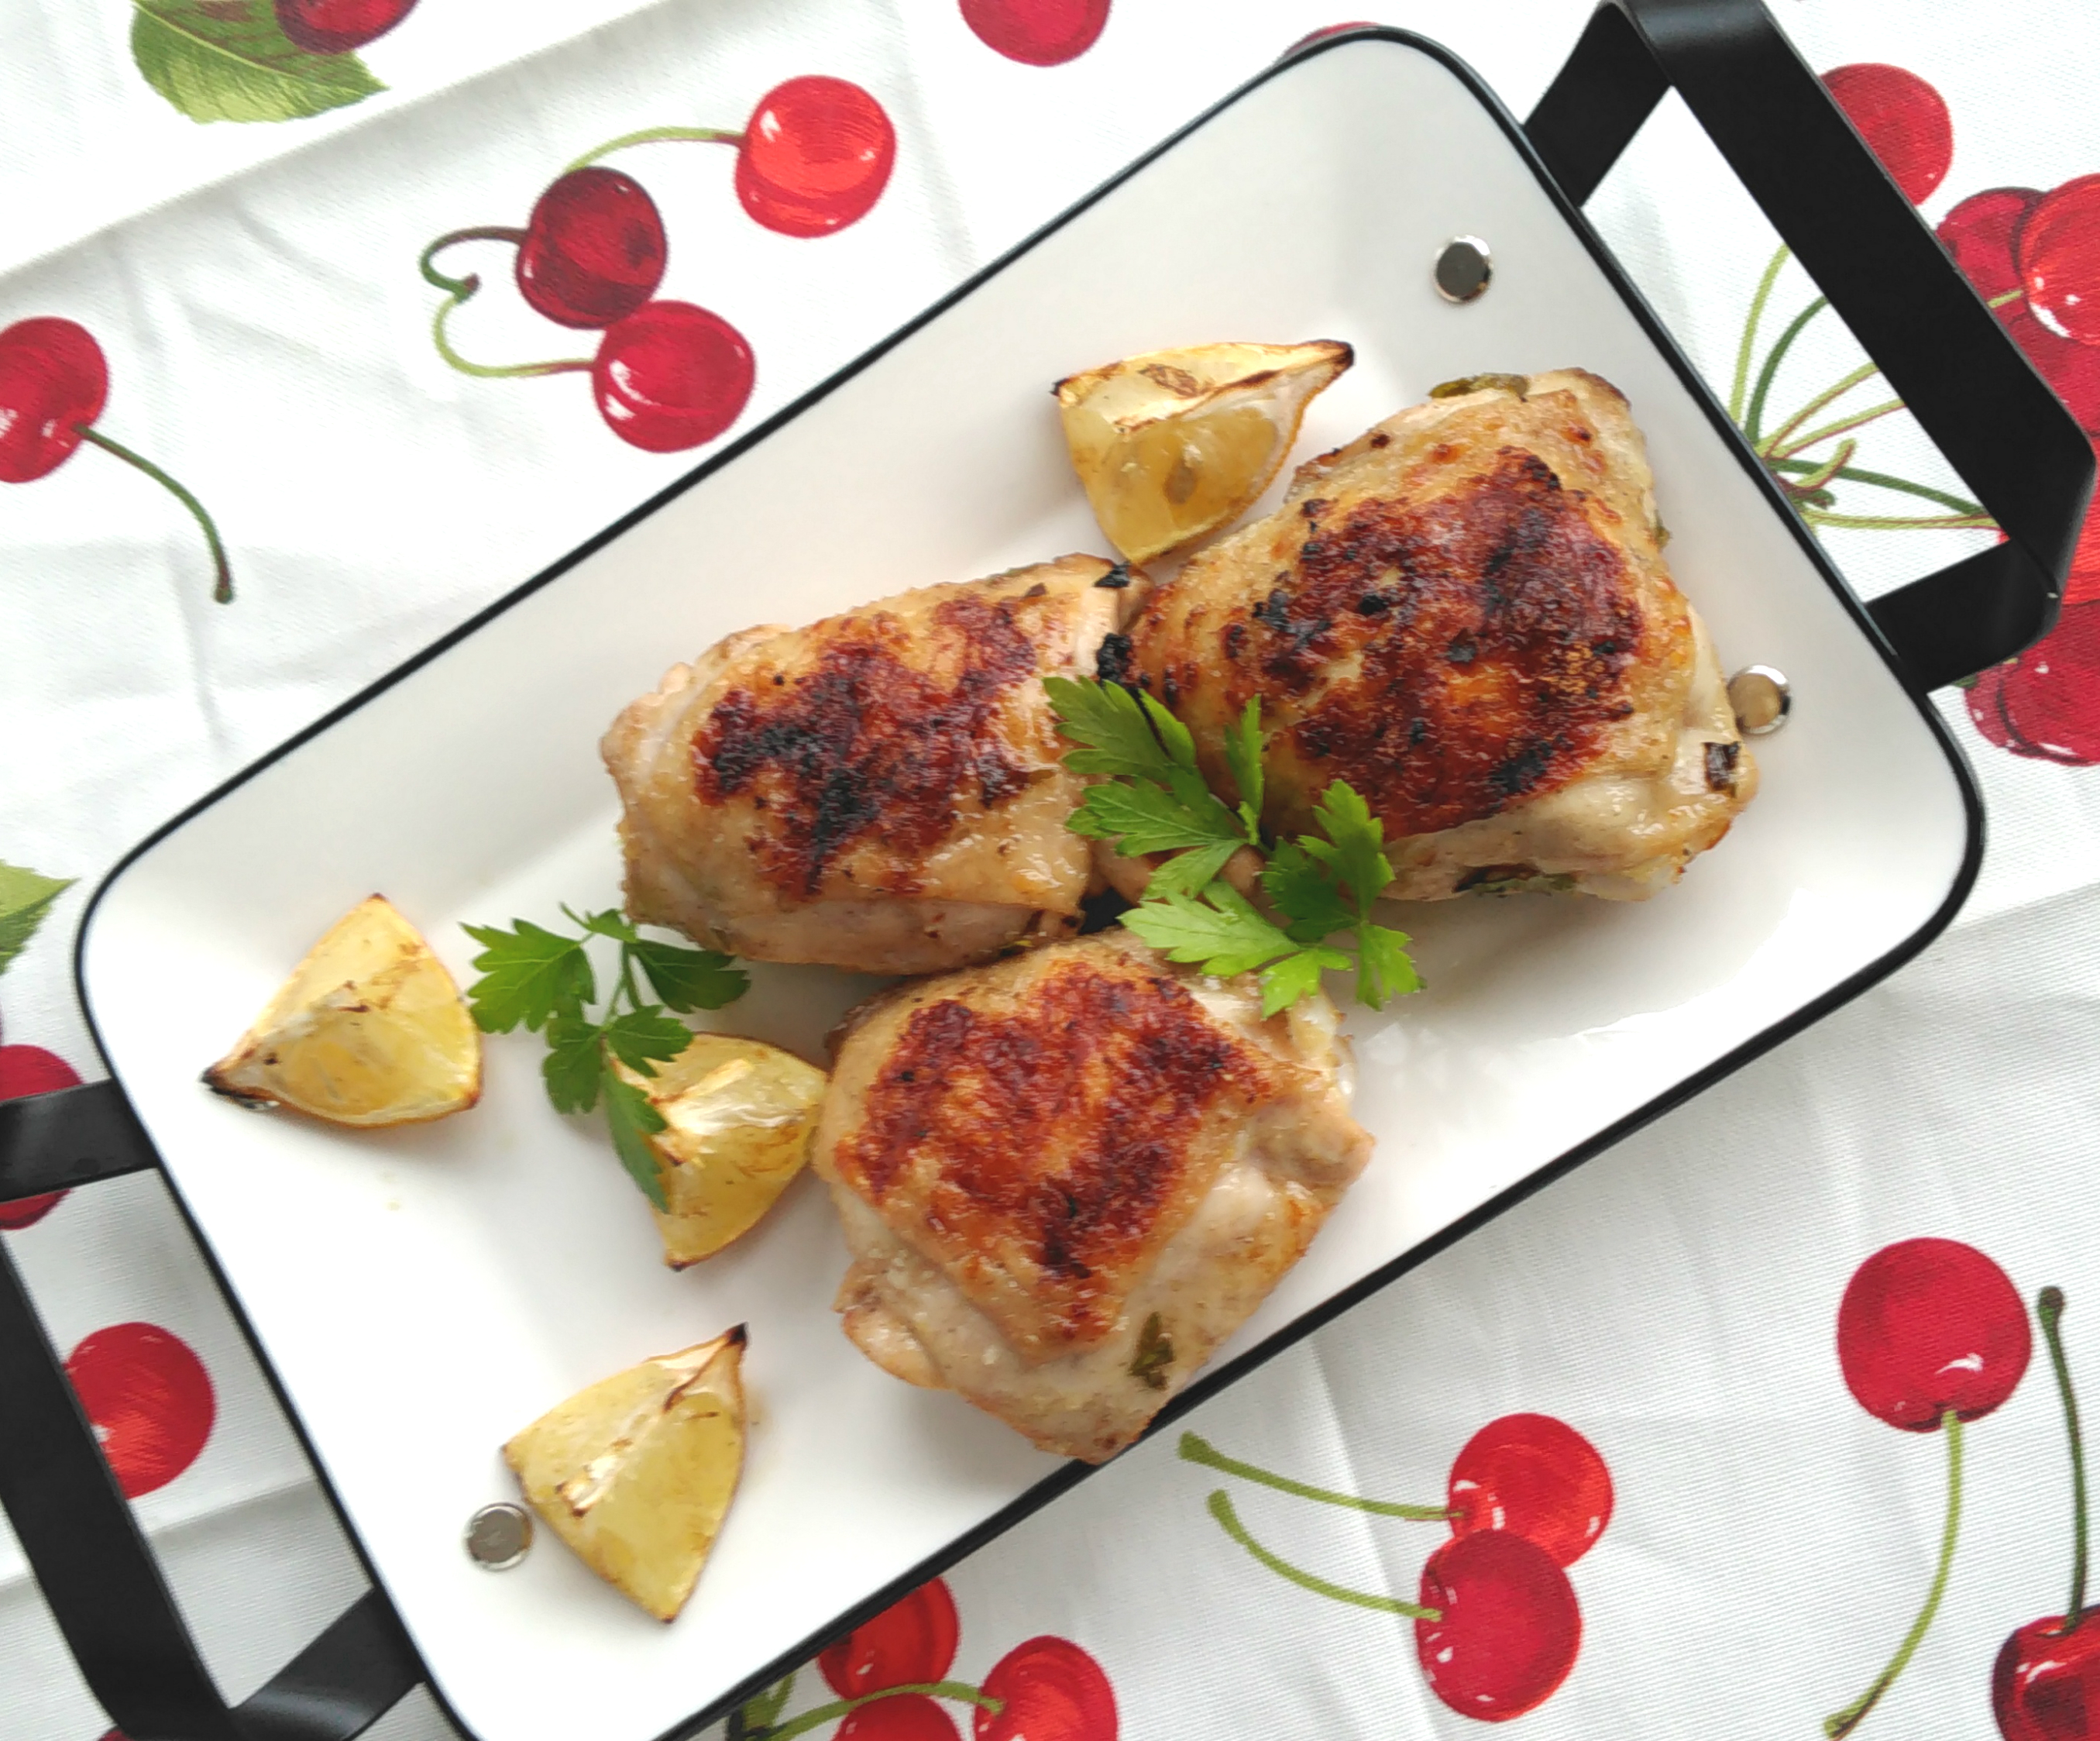 """Here's a simple marinade for juicy grilled chicken thighs. """"Whip up this easy lemony-garlic marinade before you head out to work in the morning, and come home to chicken thighs that will grill up to perfection,"""" says Bren."""